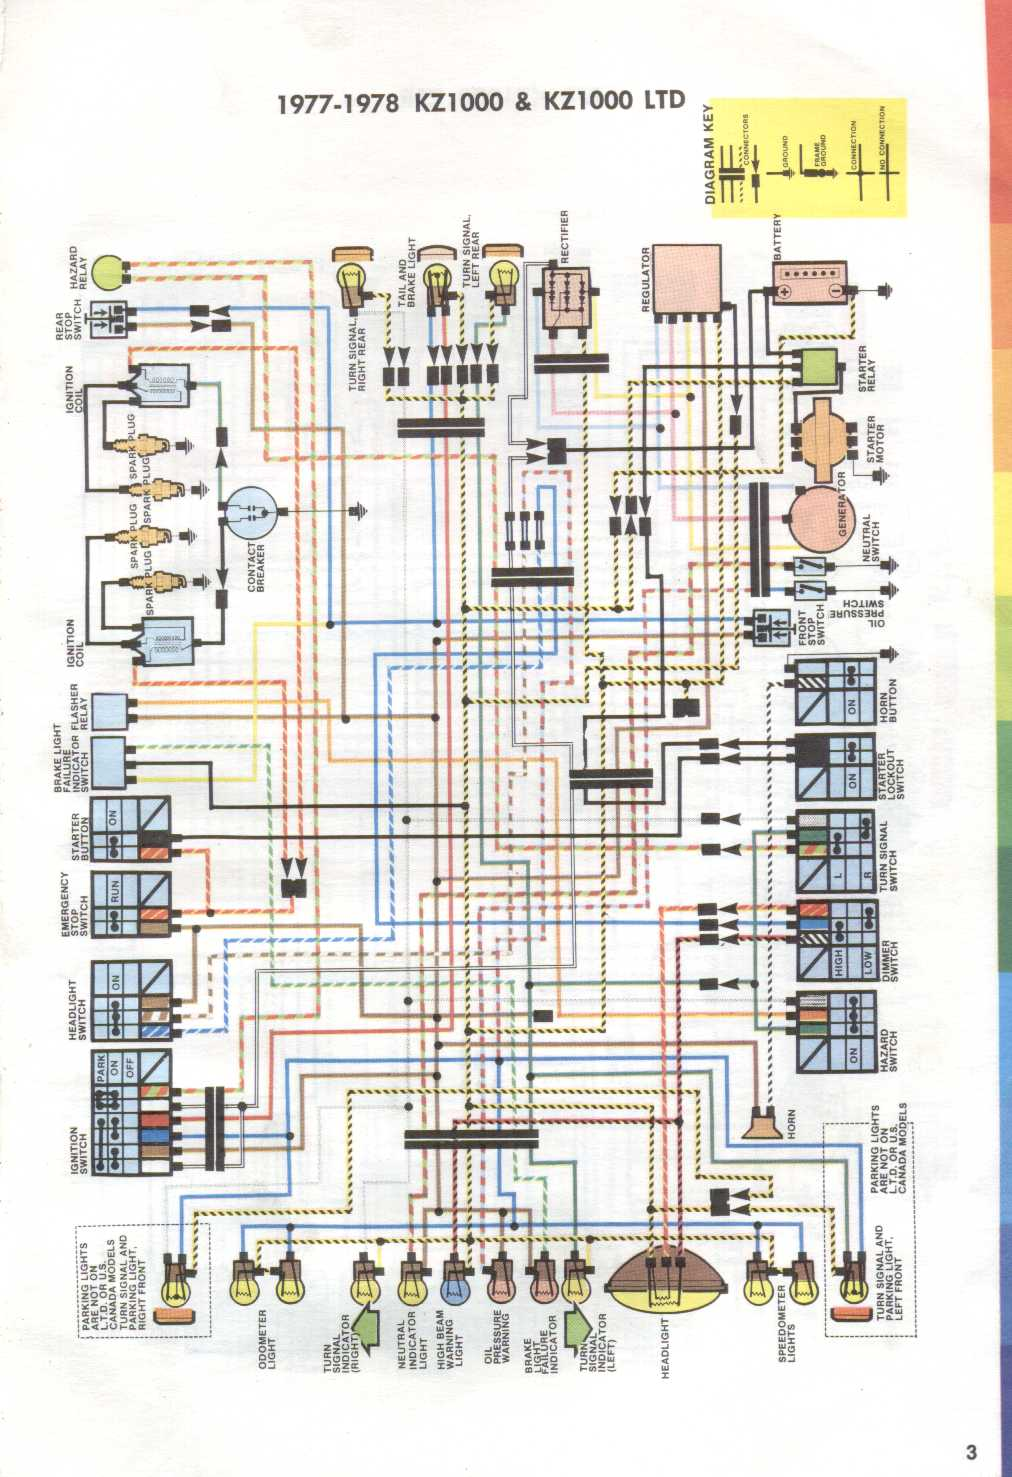 Wiring Diagram for 1977 – 1978 Kawasaki KZ1000 and KZ1000LTD – on